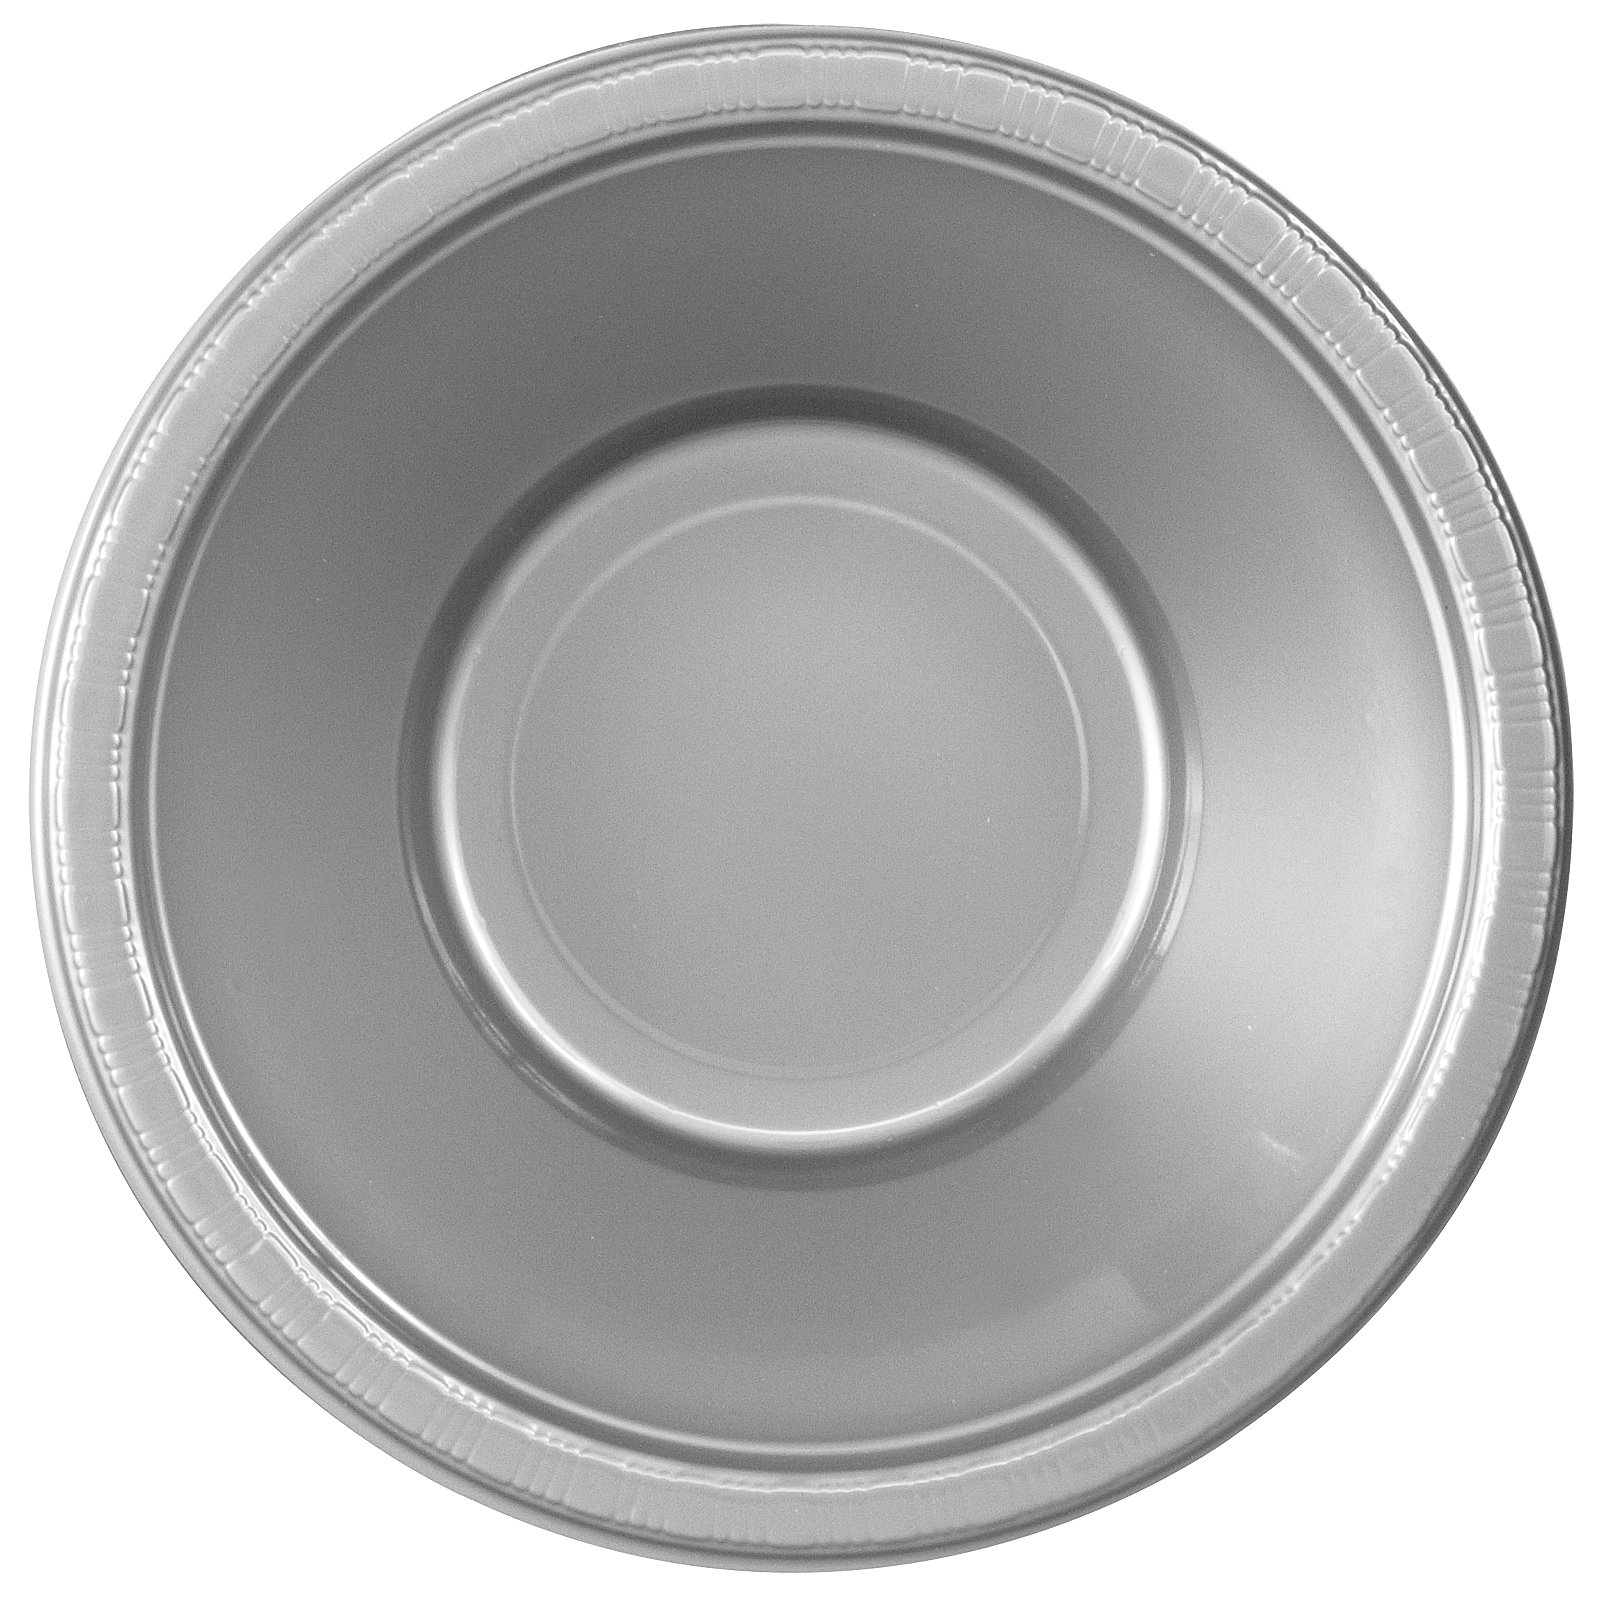 Shimmering Silver (Silver) Plastic Bowls (20 count)